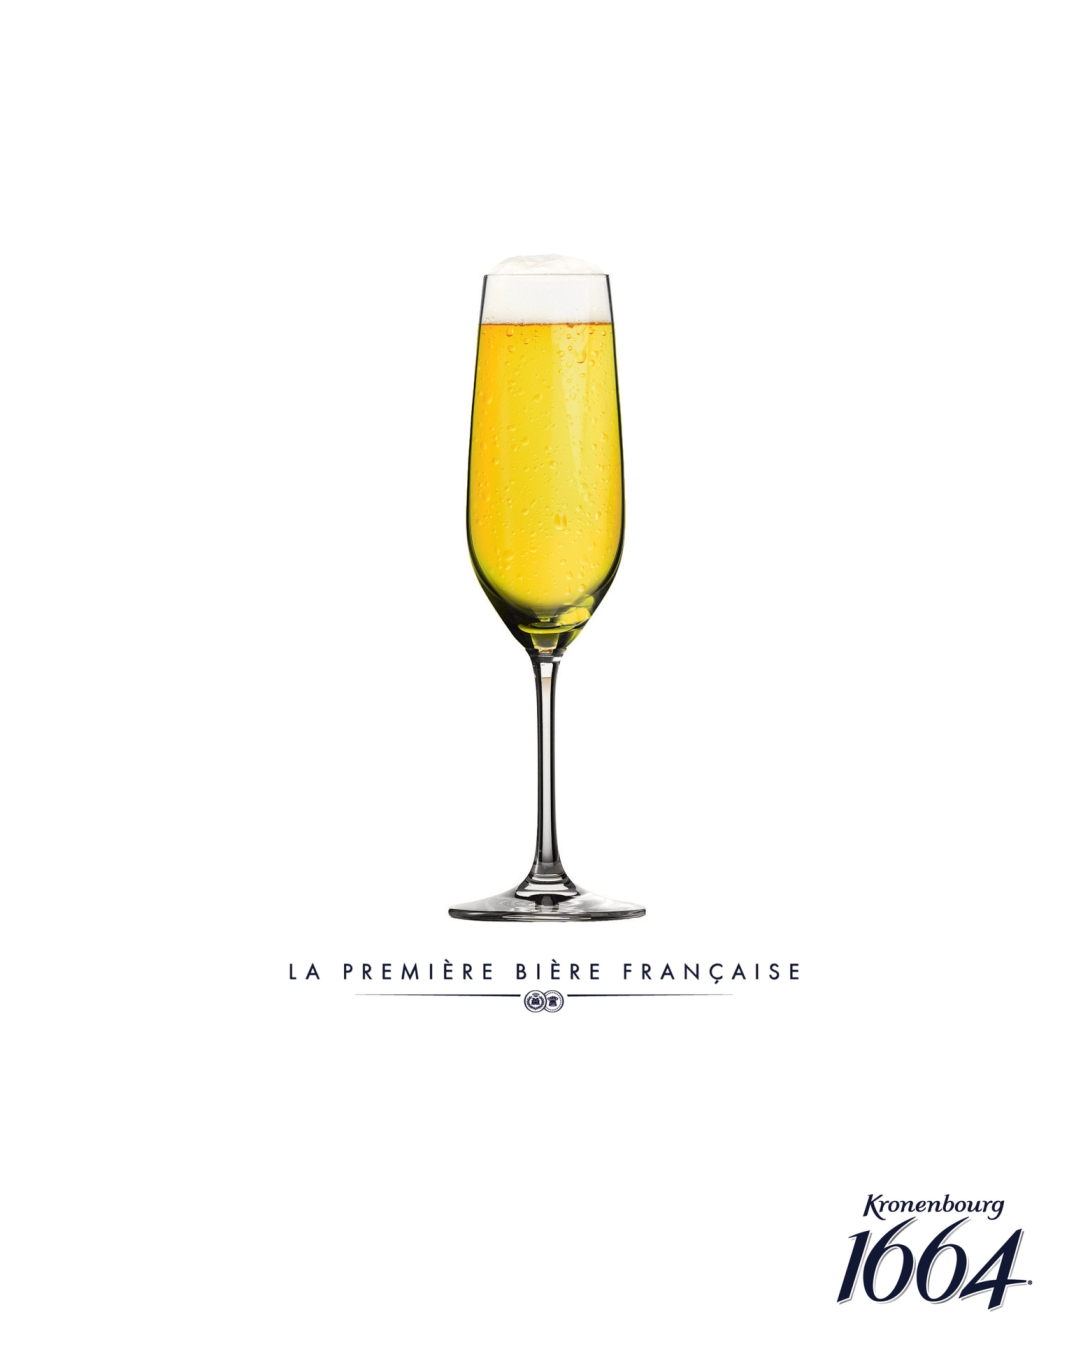 advertising idea for a premium beer brand - champagne flute